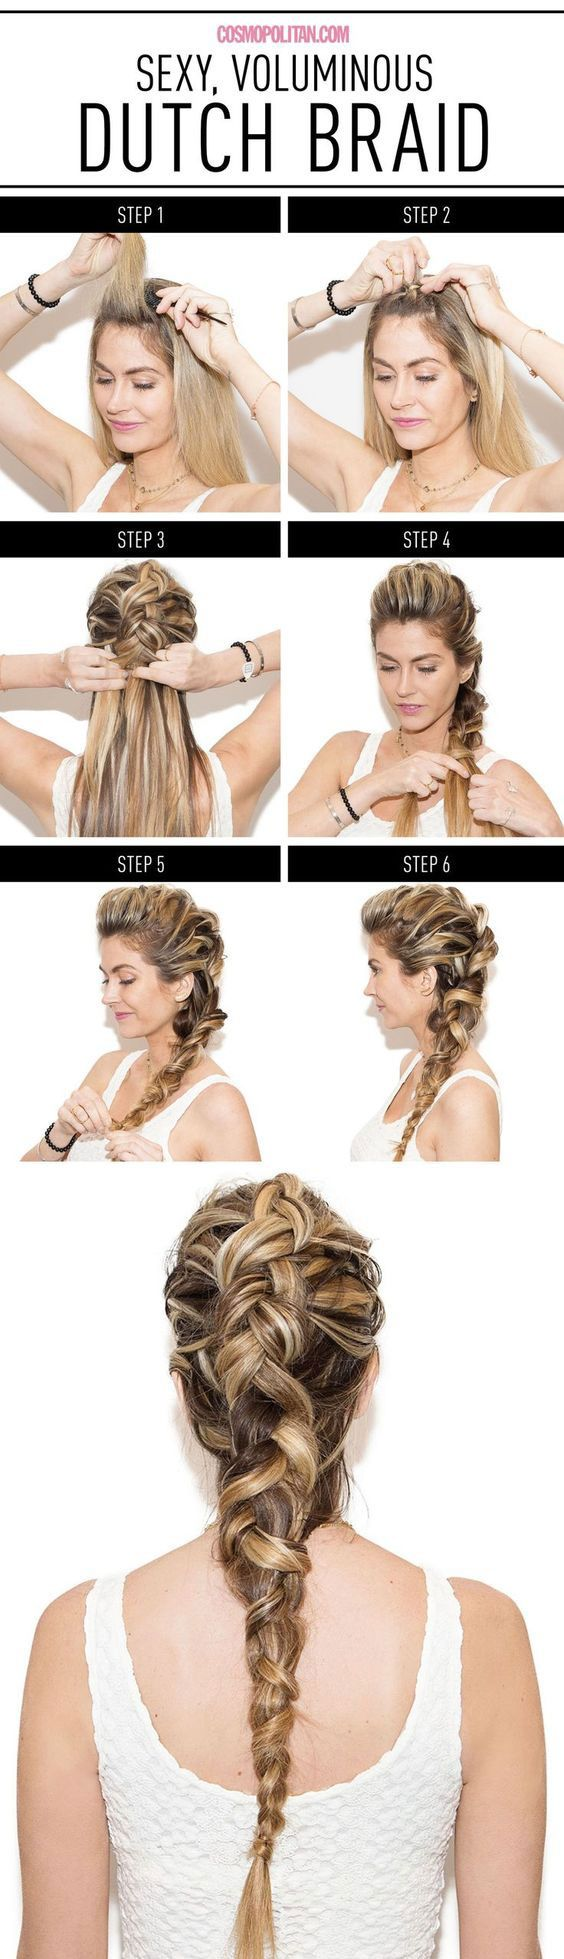 20 Creative Dutch Braid Tutorials You Need To Try This Summer